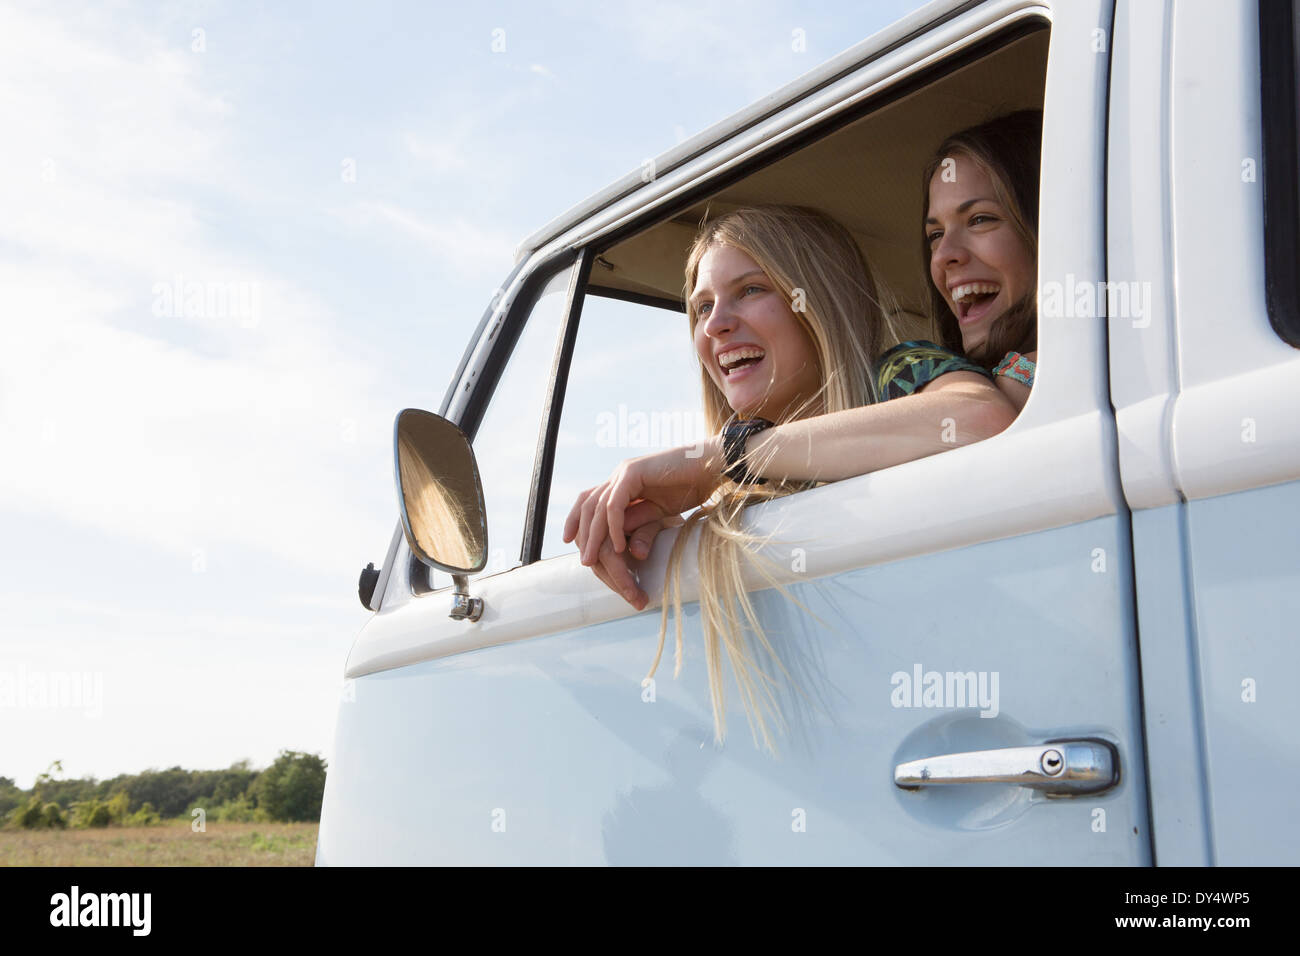 Young women looking out of campervan window laughing - Stock Image